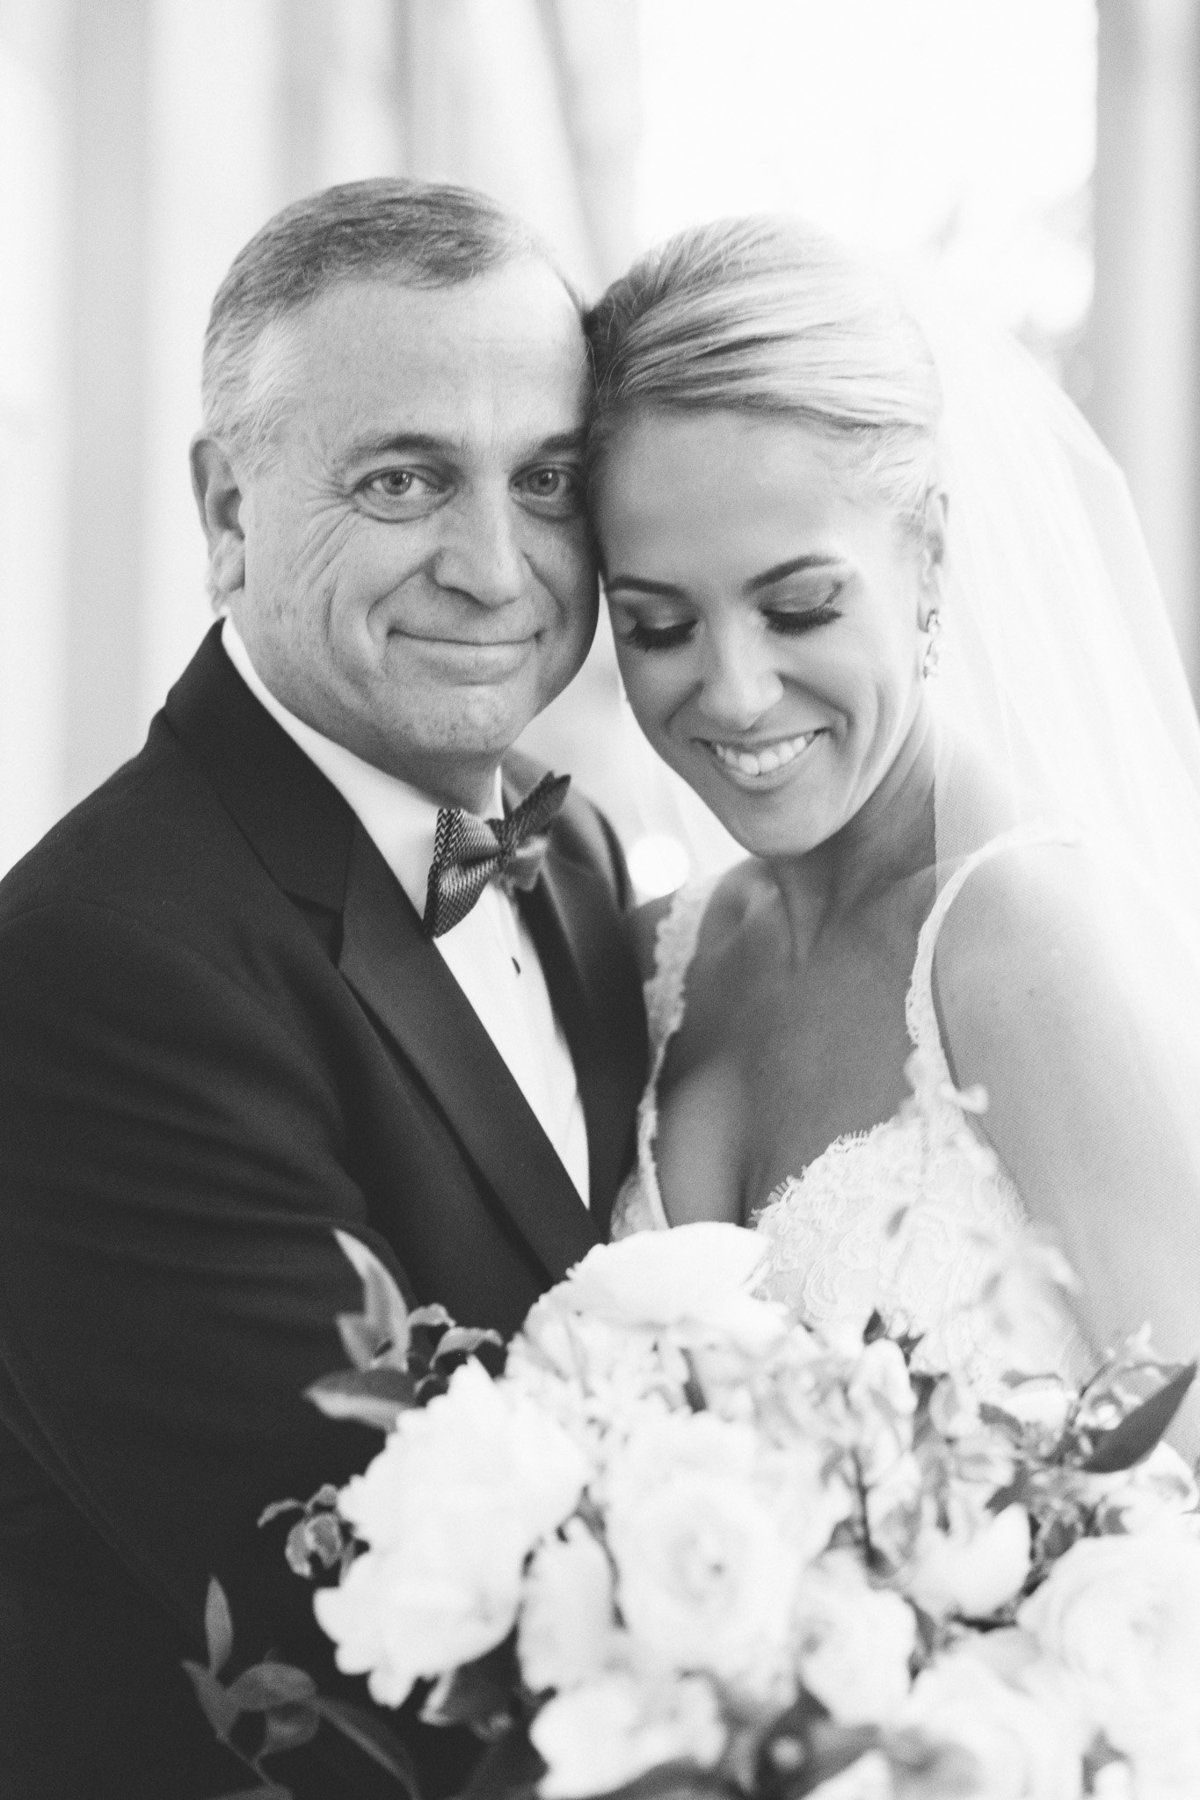 Father daughter portrait idea by real wedding photographer Rebecca Cerasani.